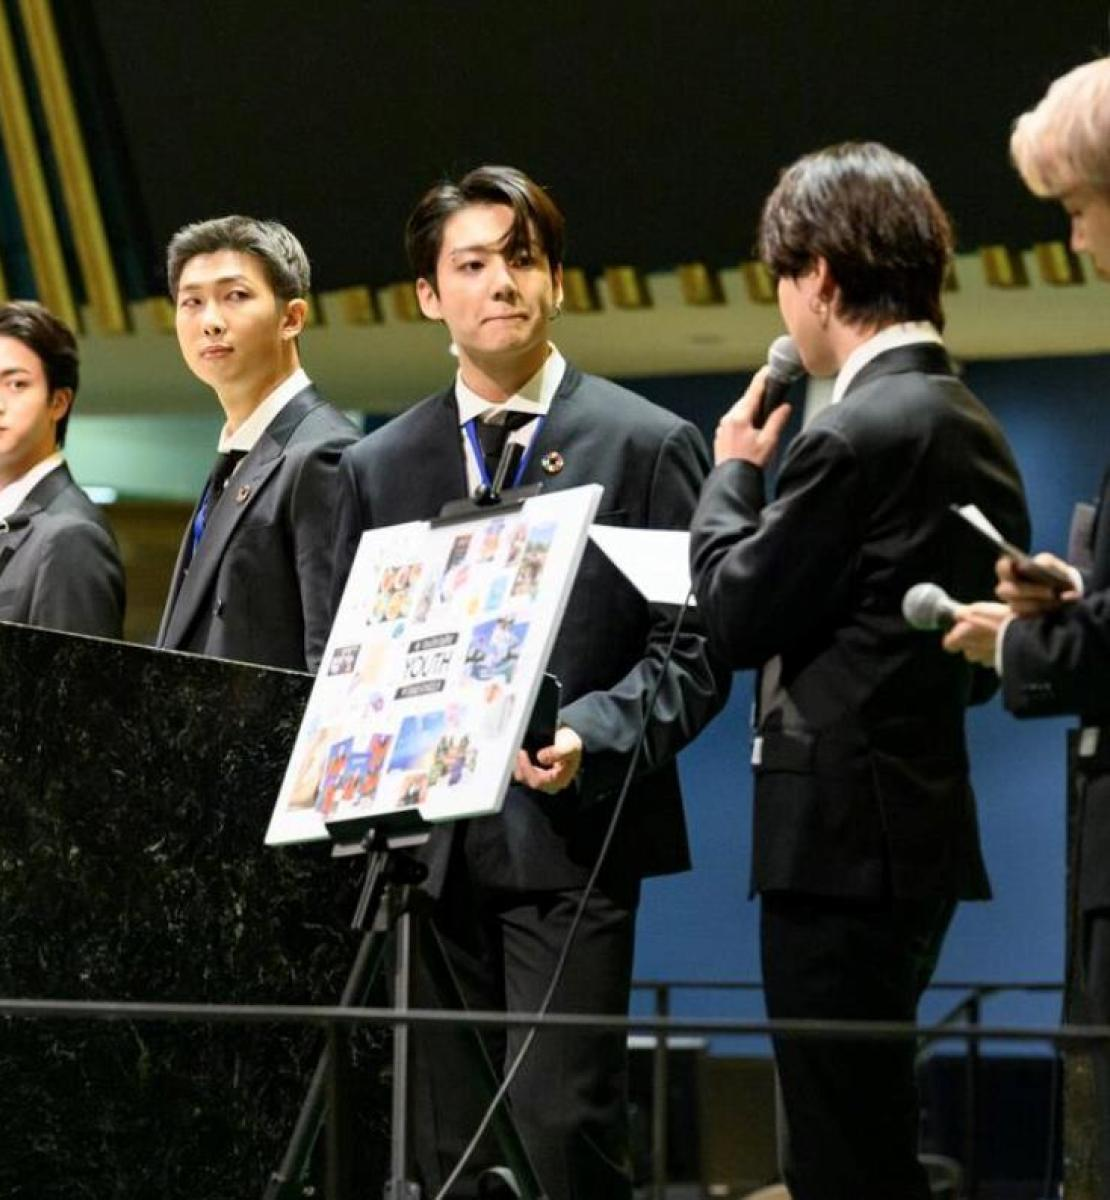 Seven members of BTS, a K-pop band, dressed in suits speak at the General Assembly.